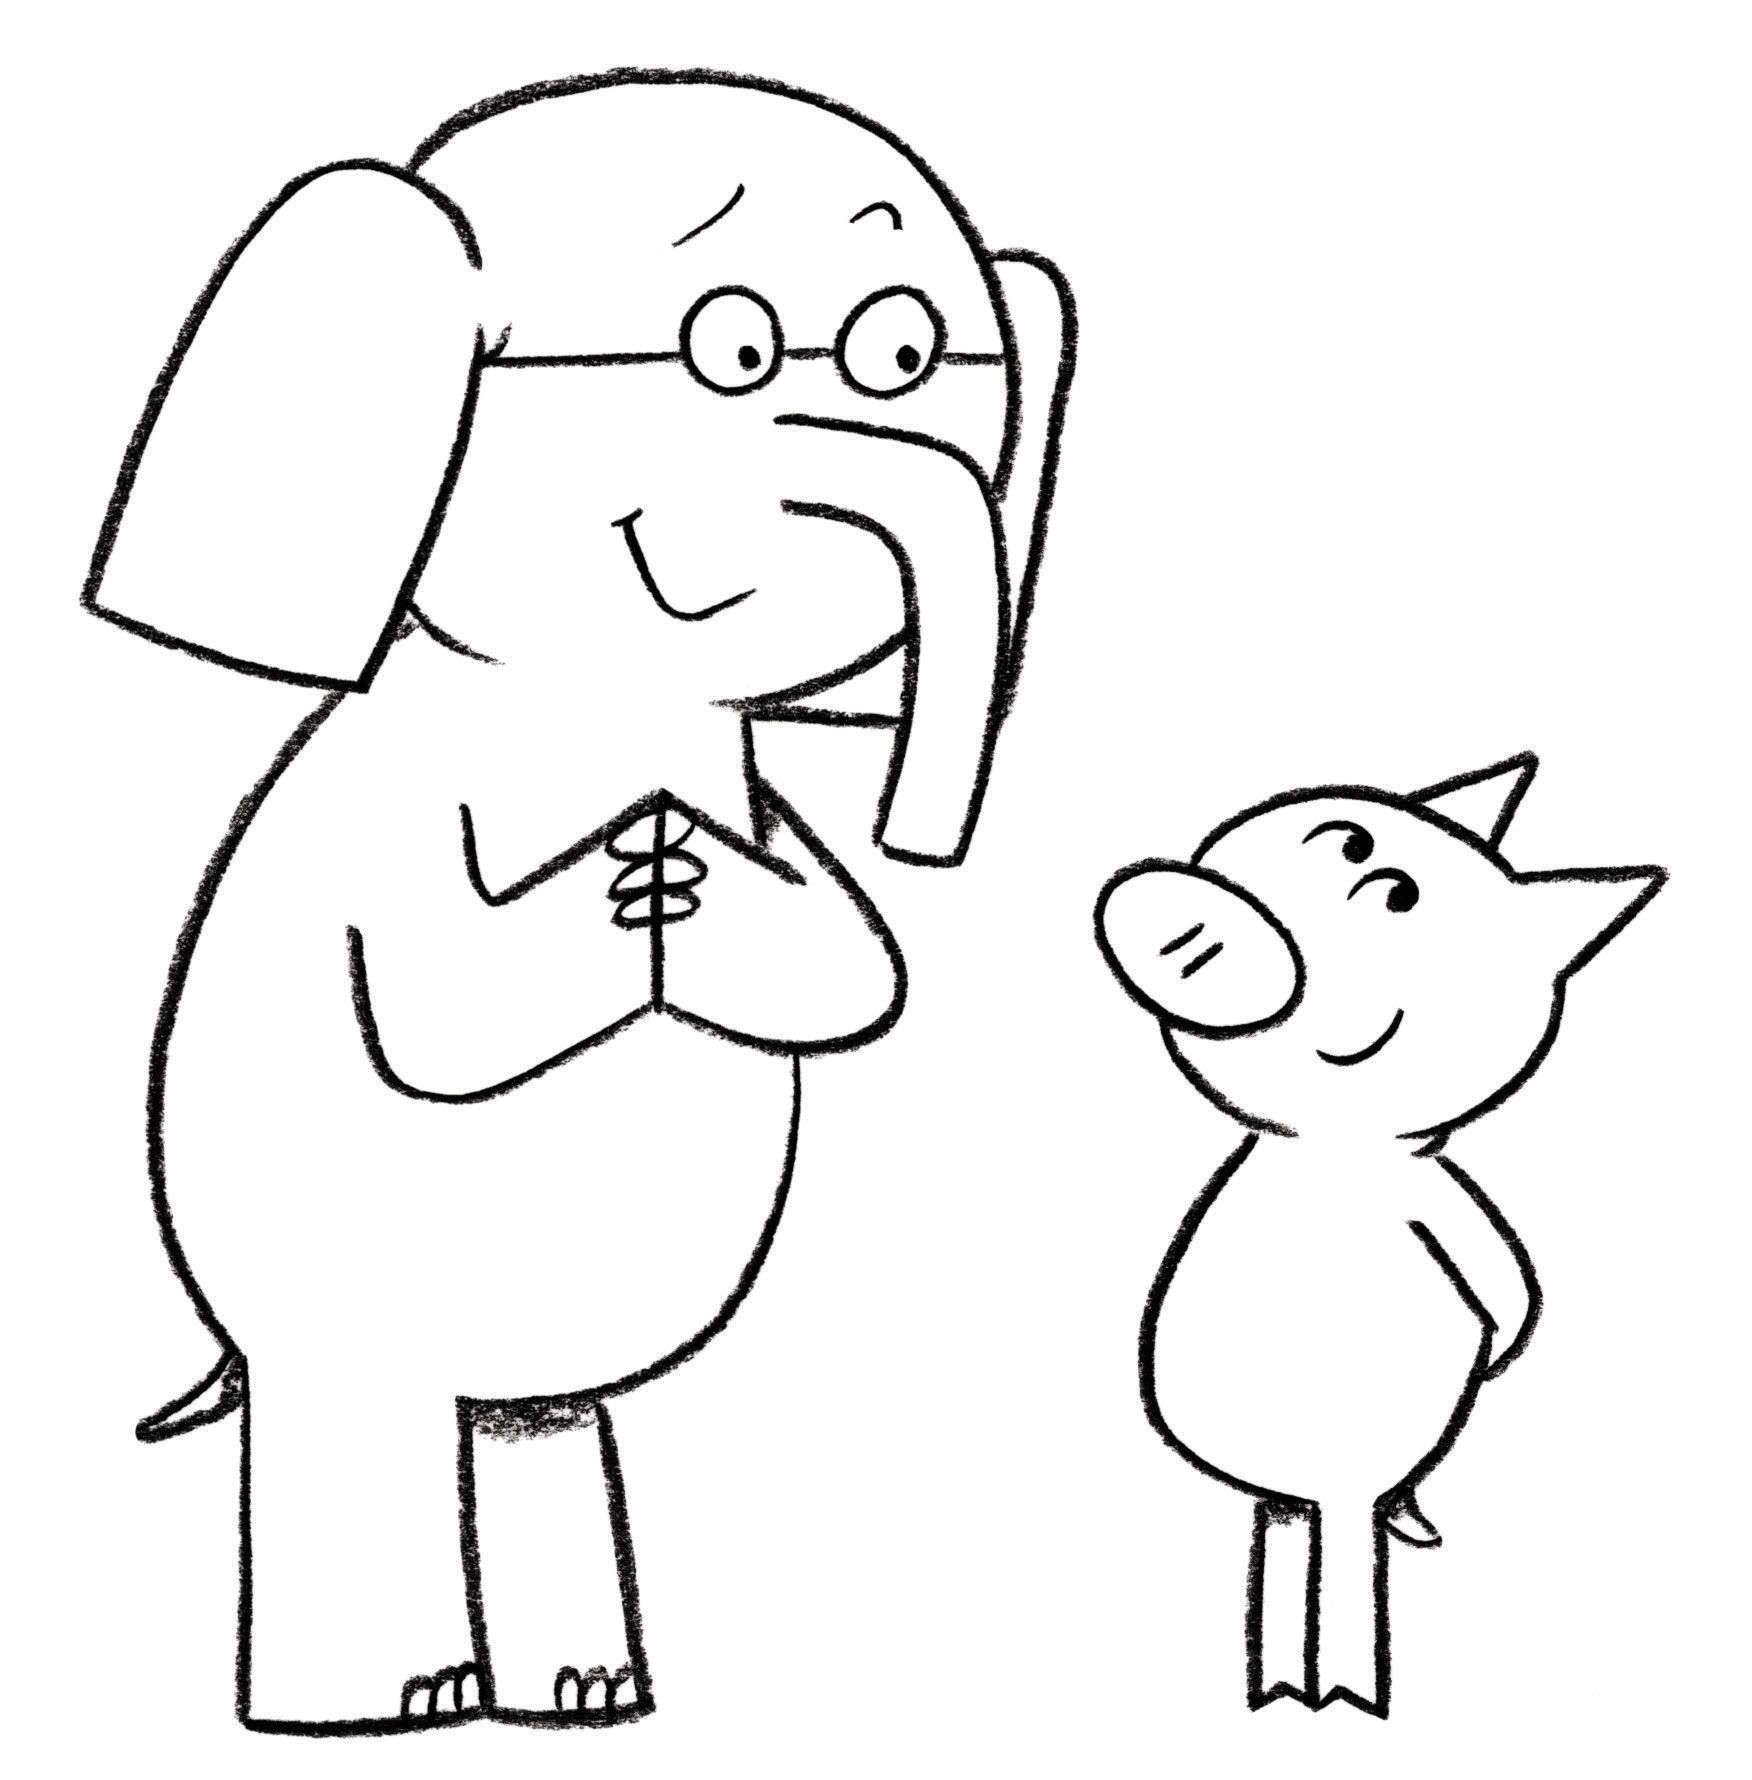 elephant and piggie coloring pages Elephant And Piggie Coloring Page | Coloring Pages | Coloring  elephant and piggie coloring pages